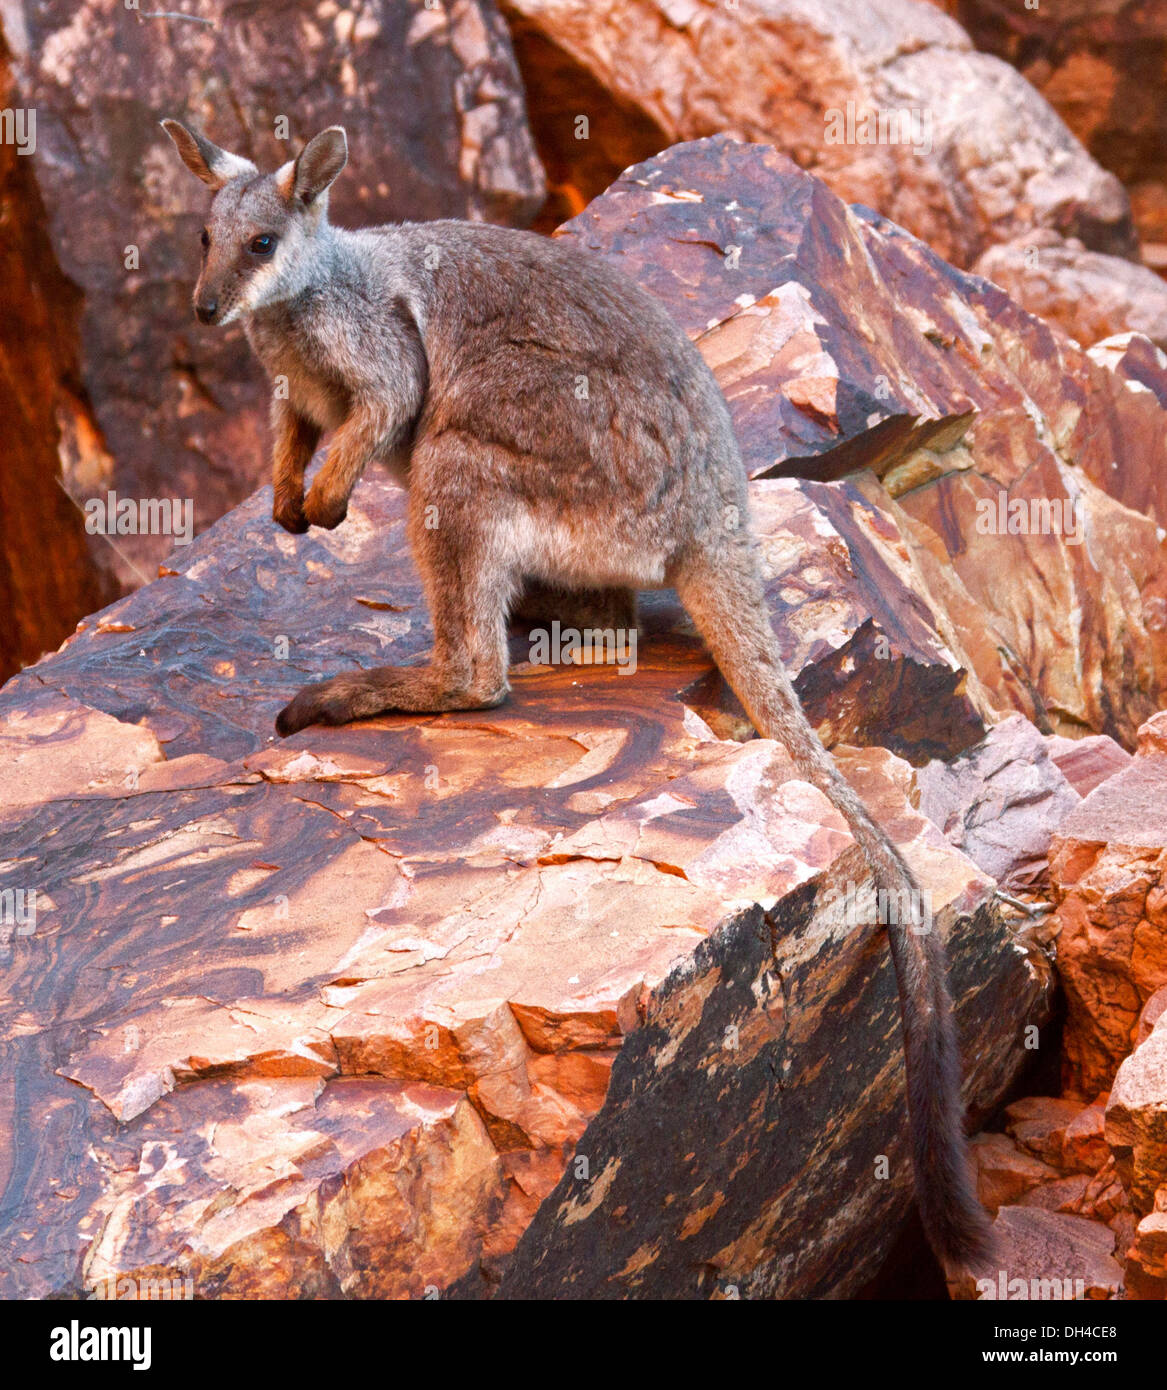 Rare black-footed rock wallaby Petrogale lateralis on rocks in the wild at Simpson's Gap in West MacDonnell Ranges near Alice Springs NT Australia - Stock Image